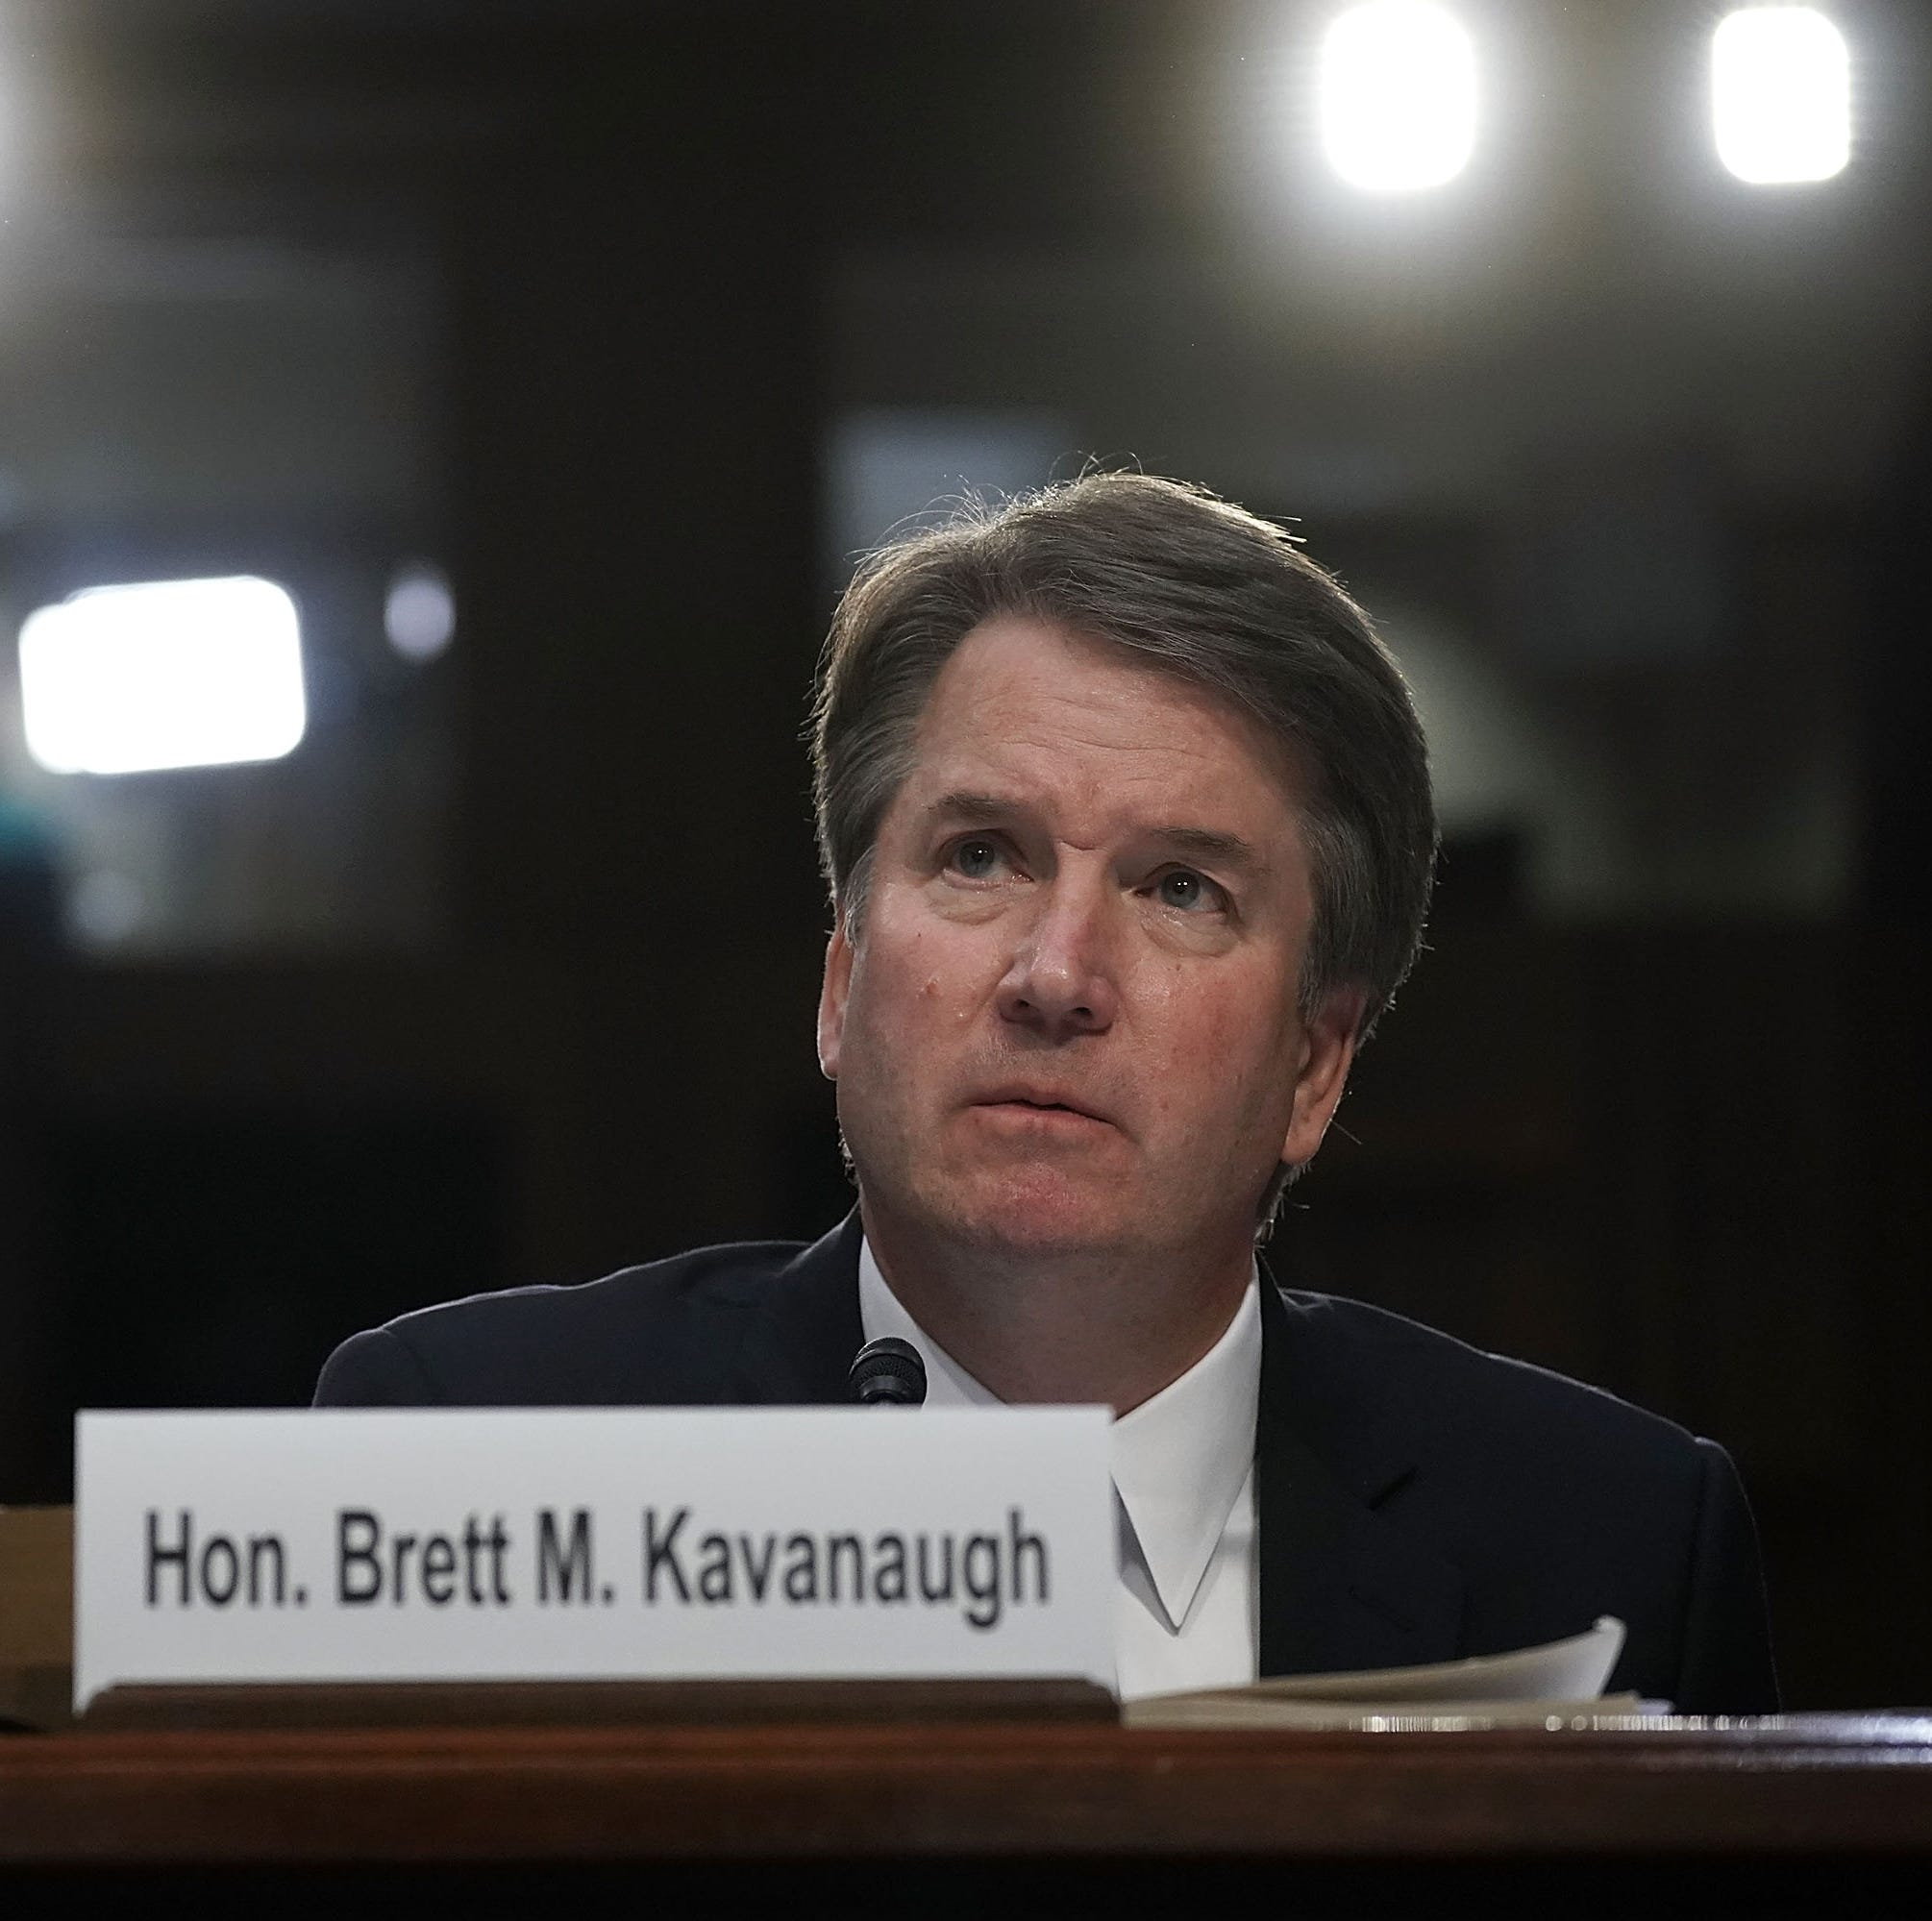 National walkout planned to show solidarity for Brett Kavanaugh accusers